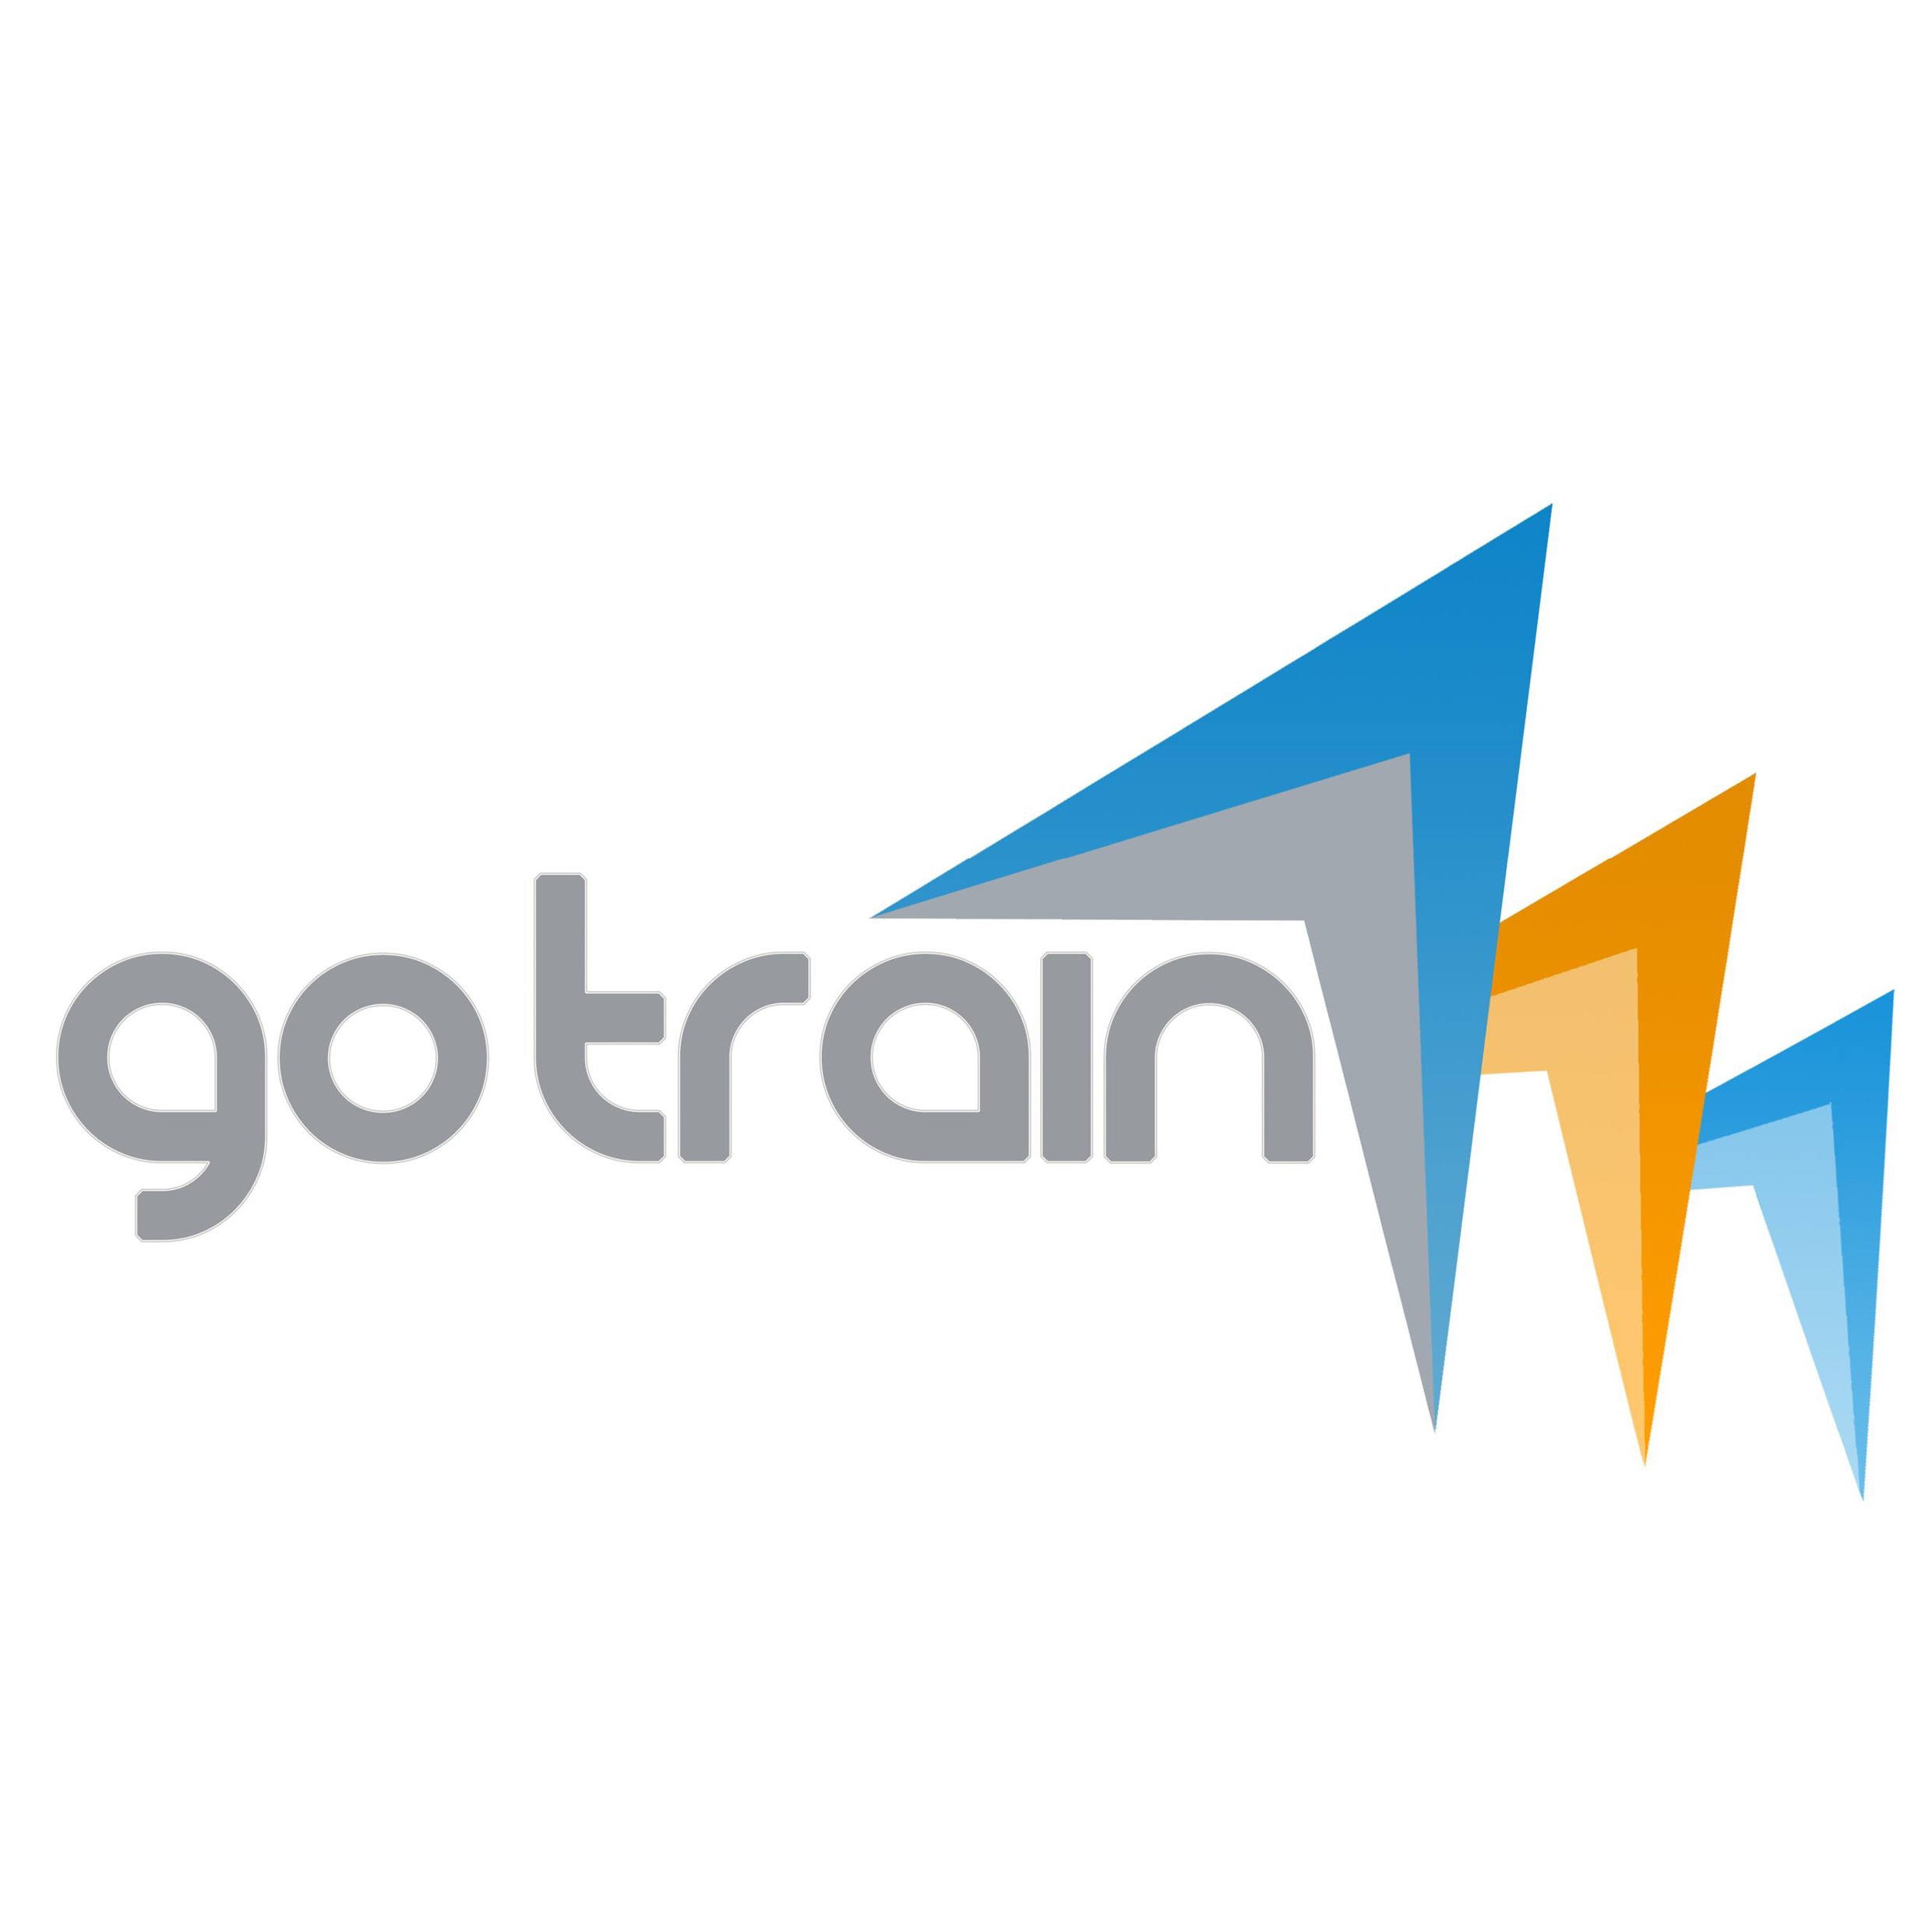 Go Train logo